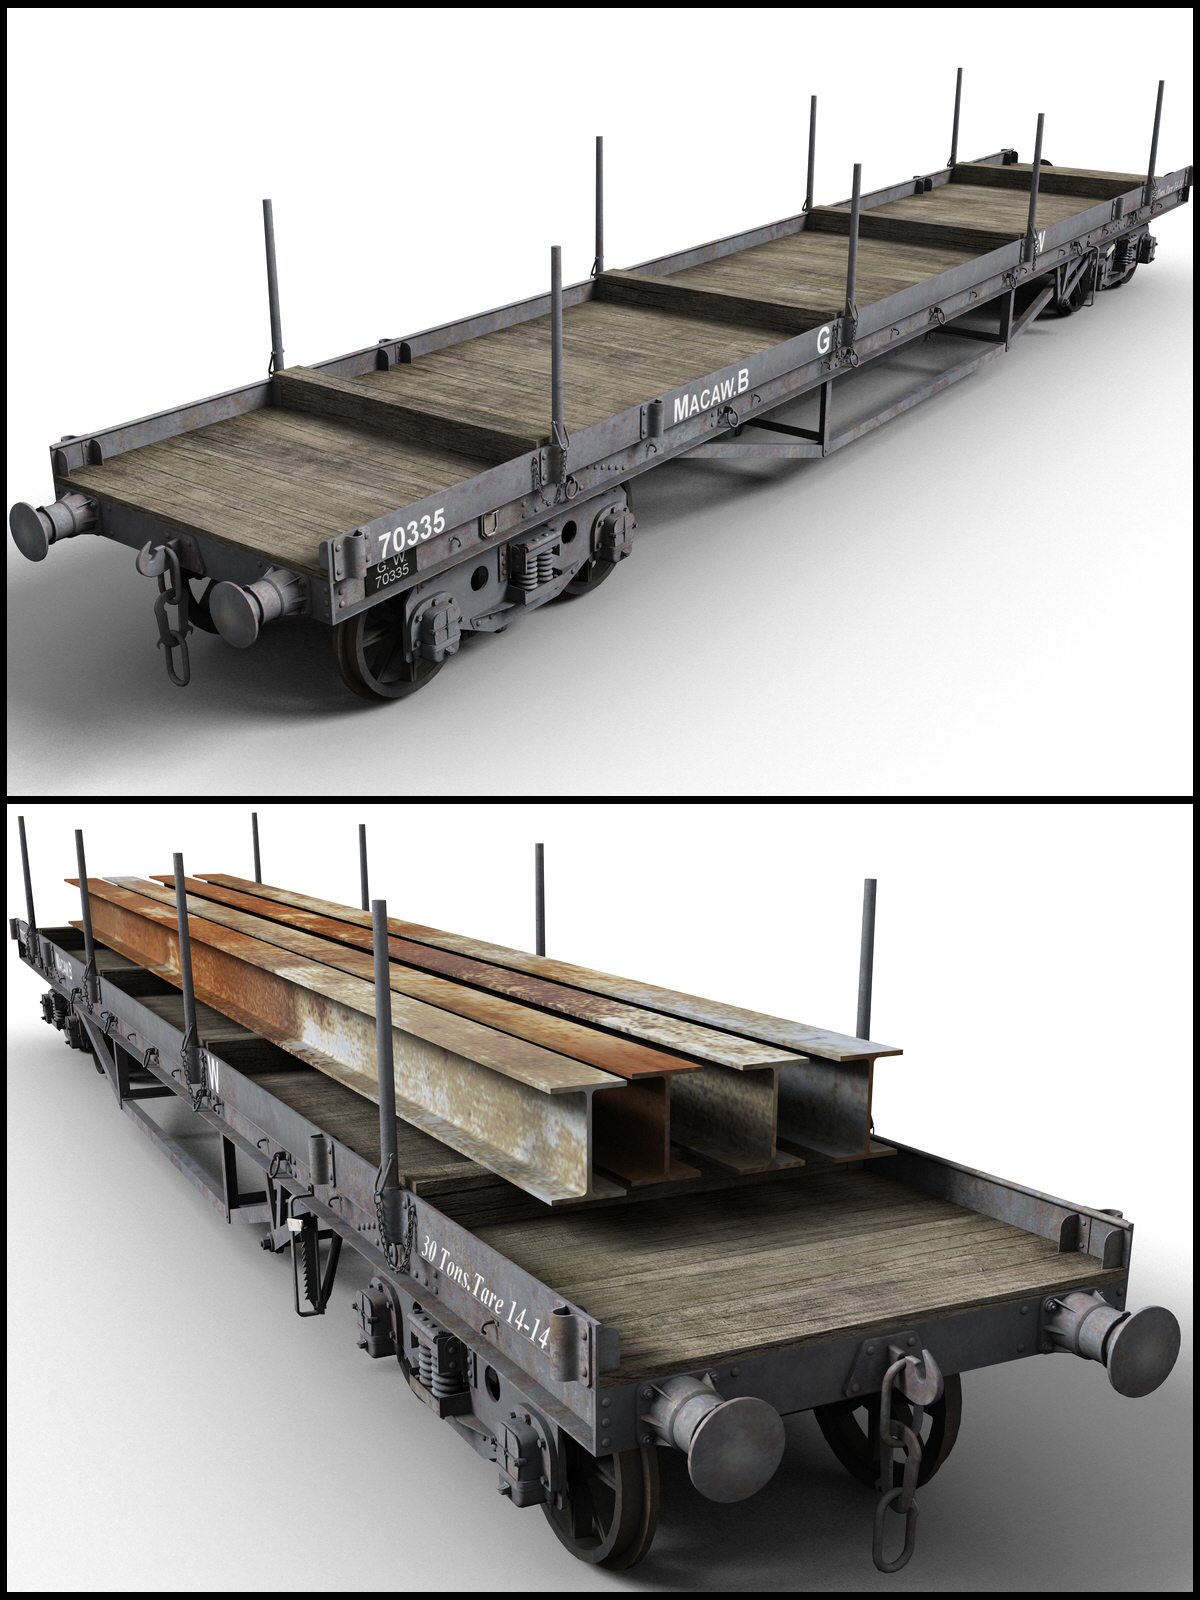 GWR -Macaw B- Bogie Wagon - Extended License by DryJack